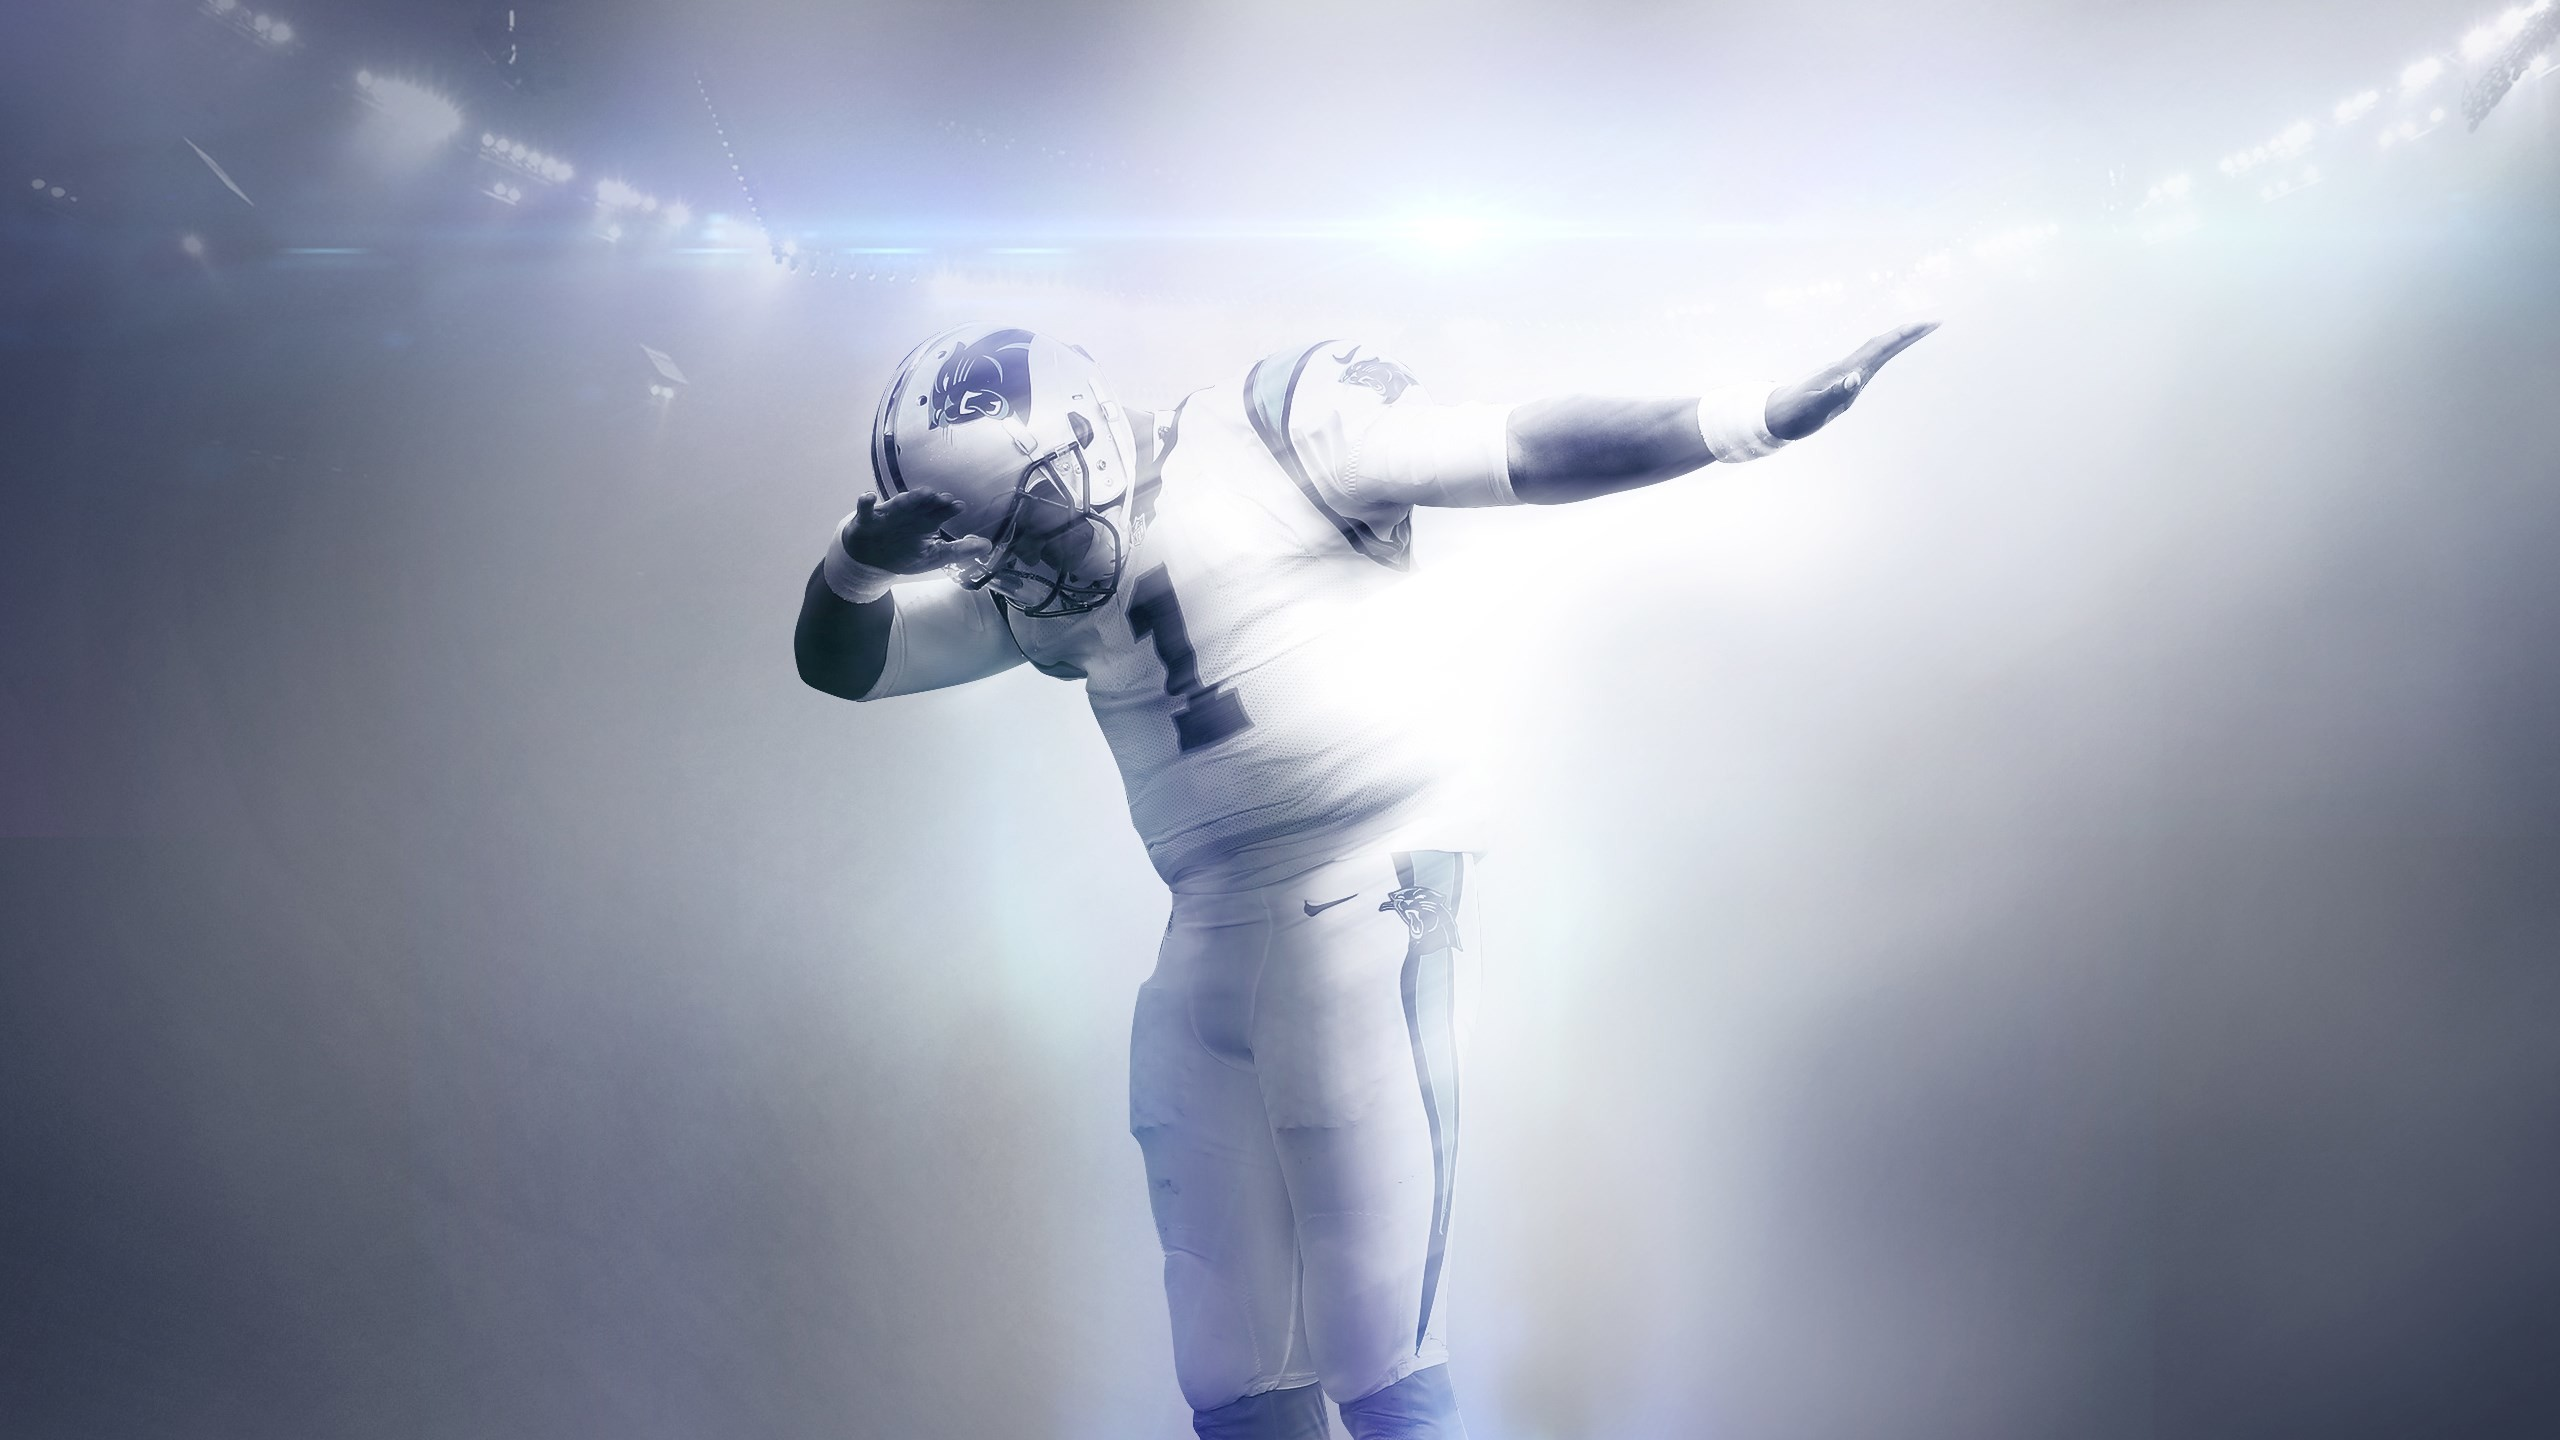 cam newton images free download